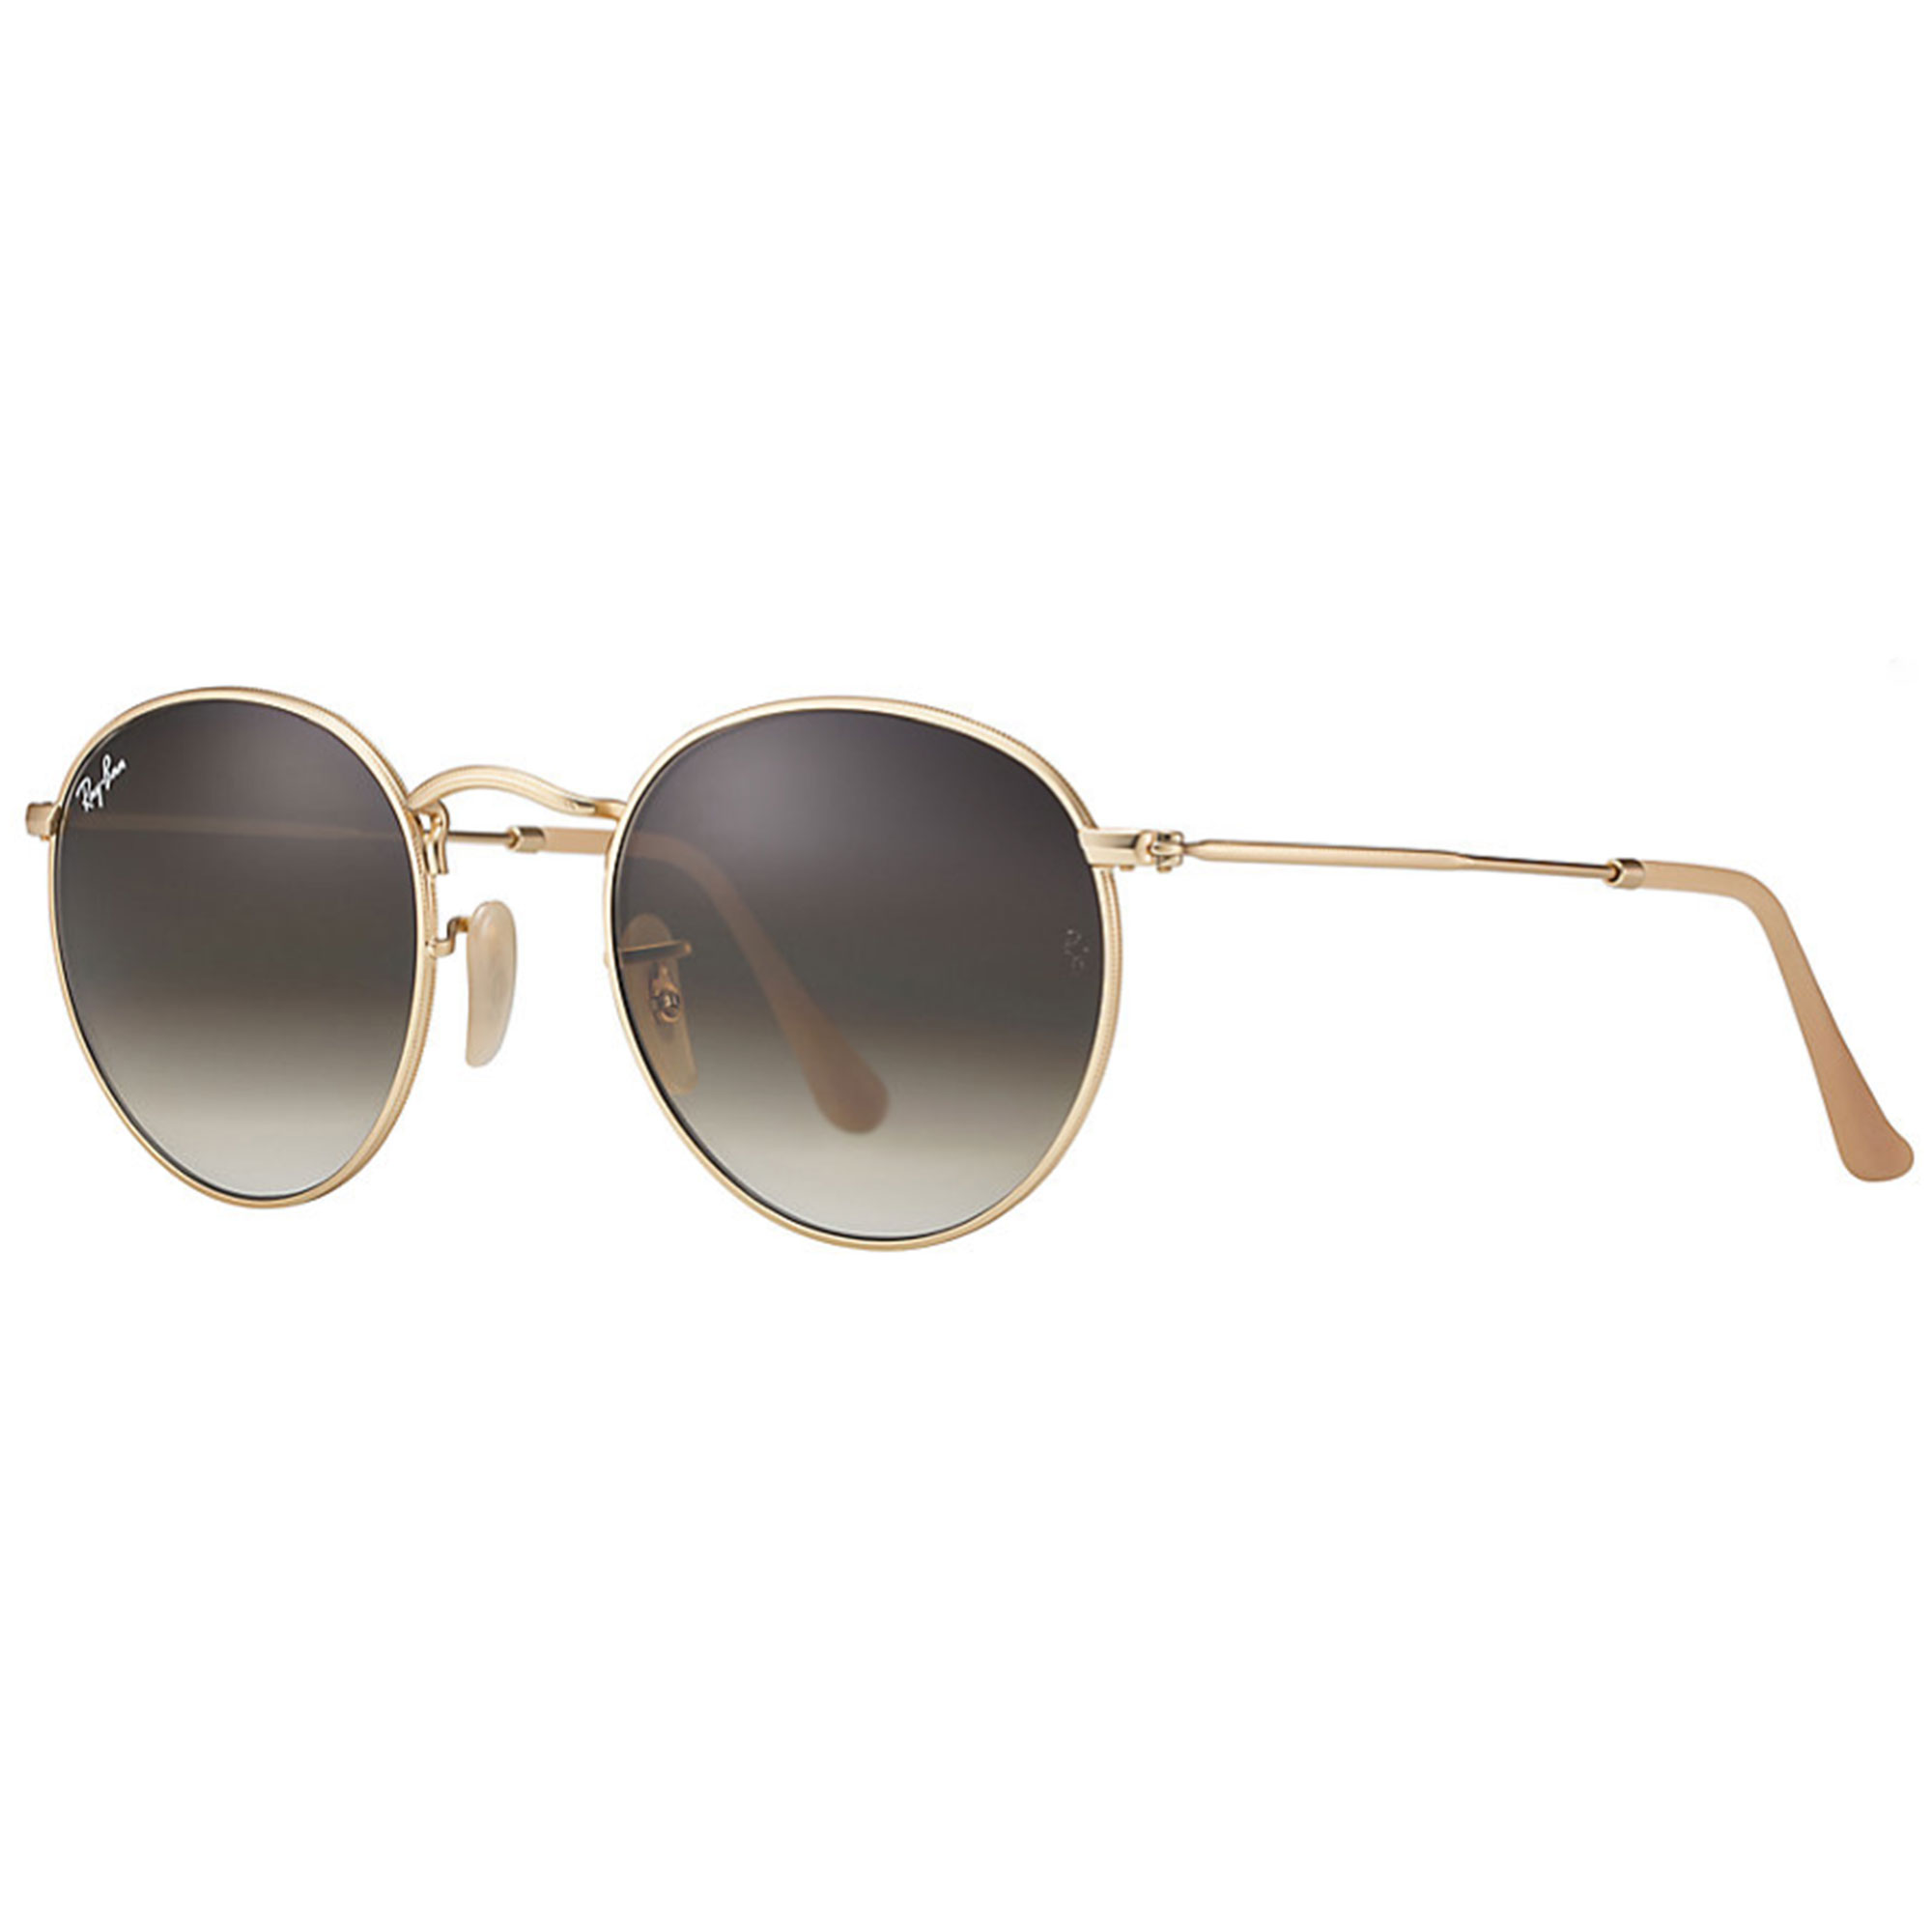 8b5540367 Ray-Ban Round Classic Brown Gradient Sunglasses - McConnell Optometry